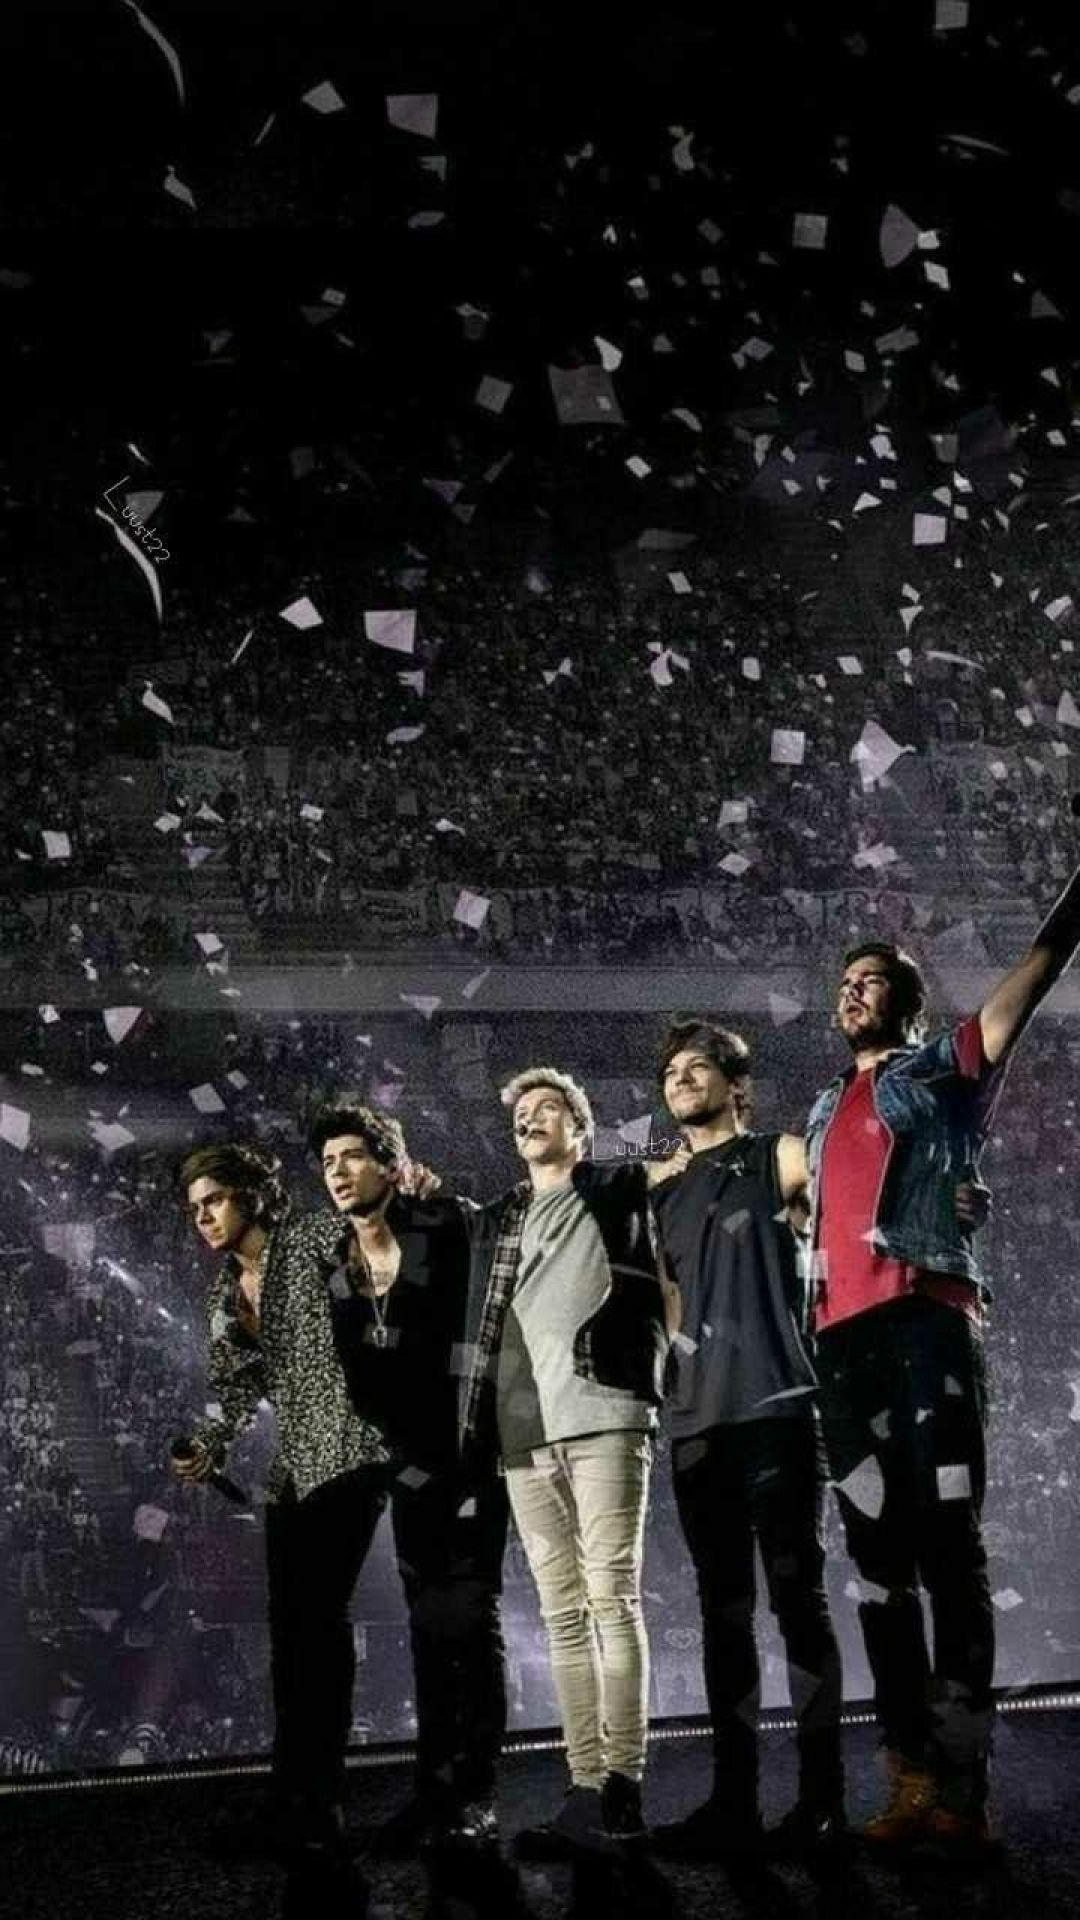 [35+] One Direction Images, HD Photos (1080p), Wallpapers ...